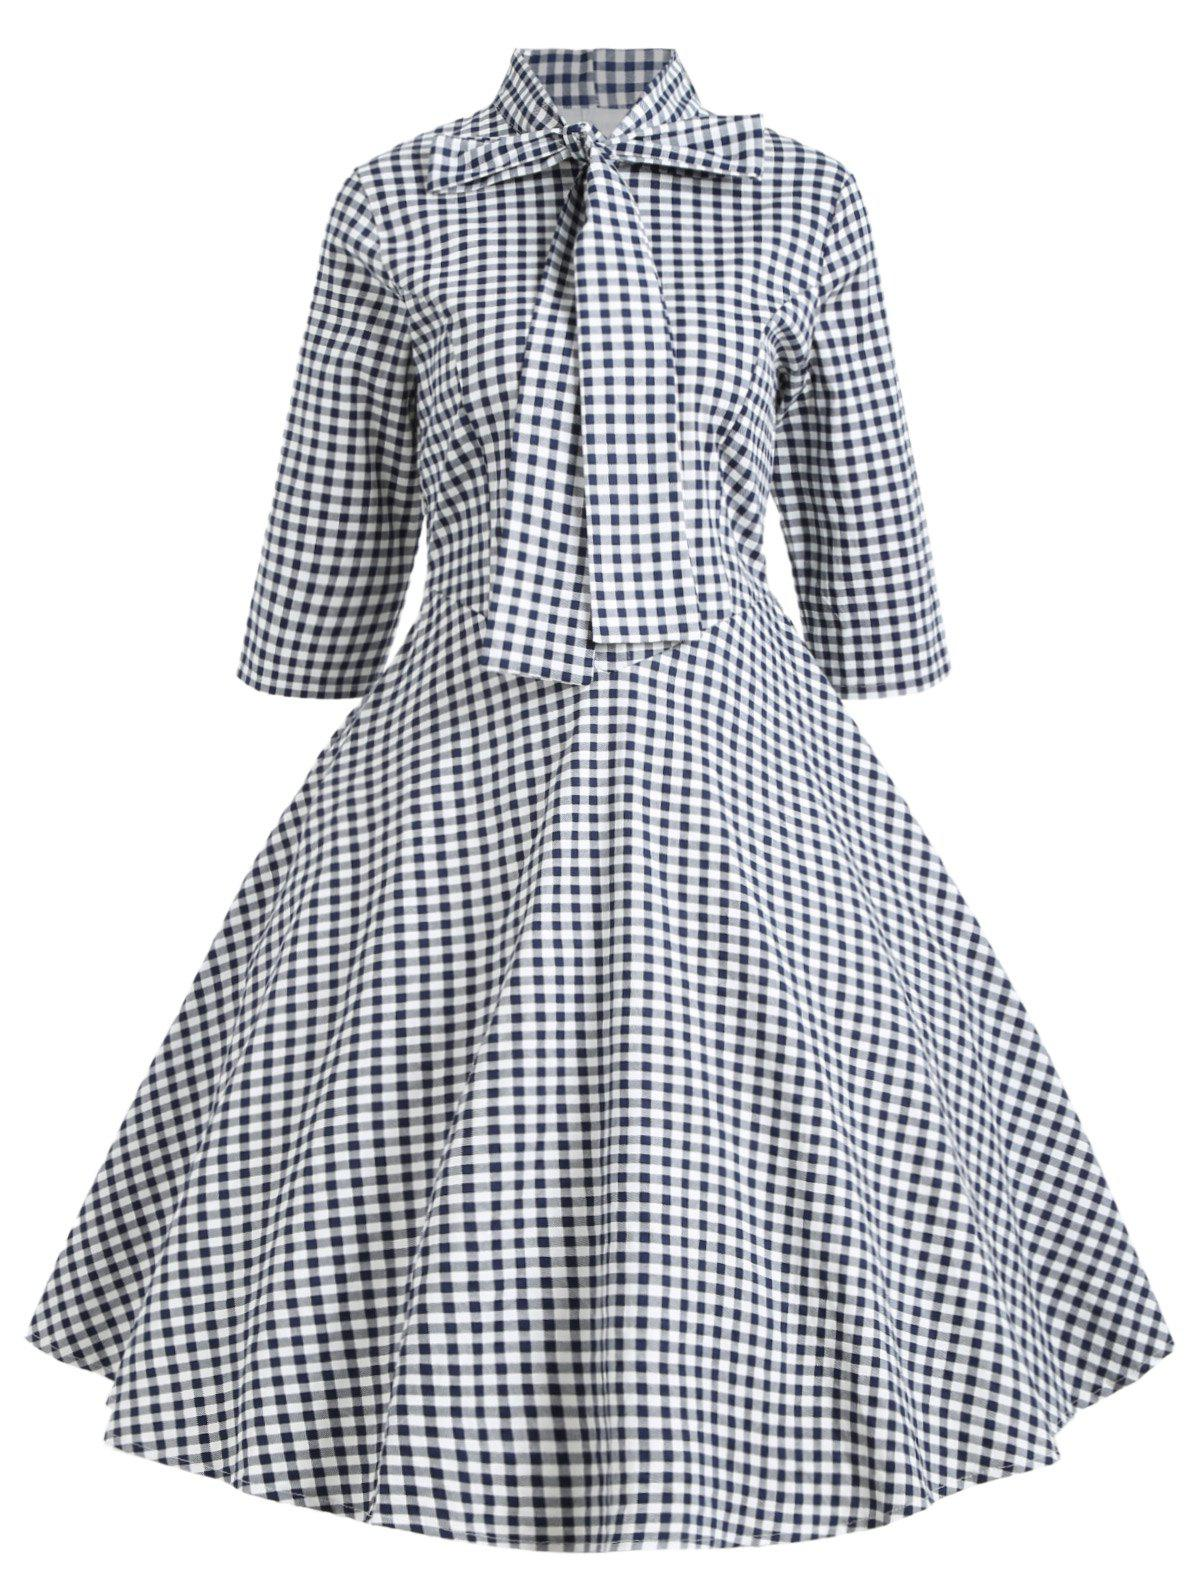 Shops Vintage Bowknot Plaid Skater Dress